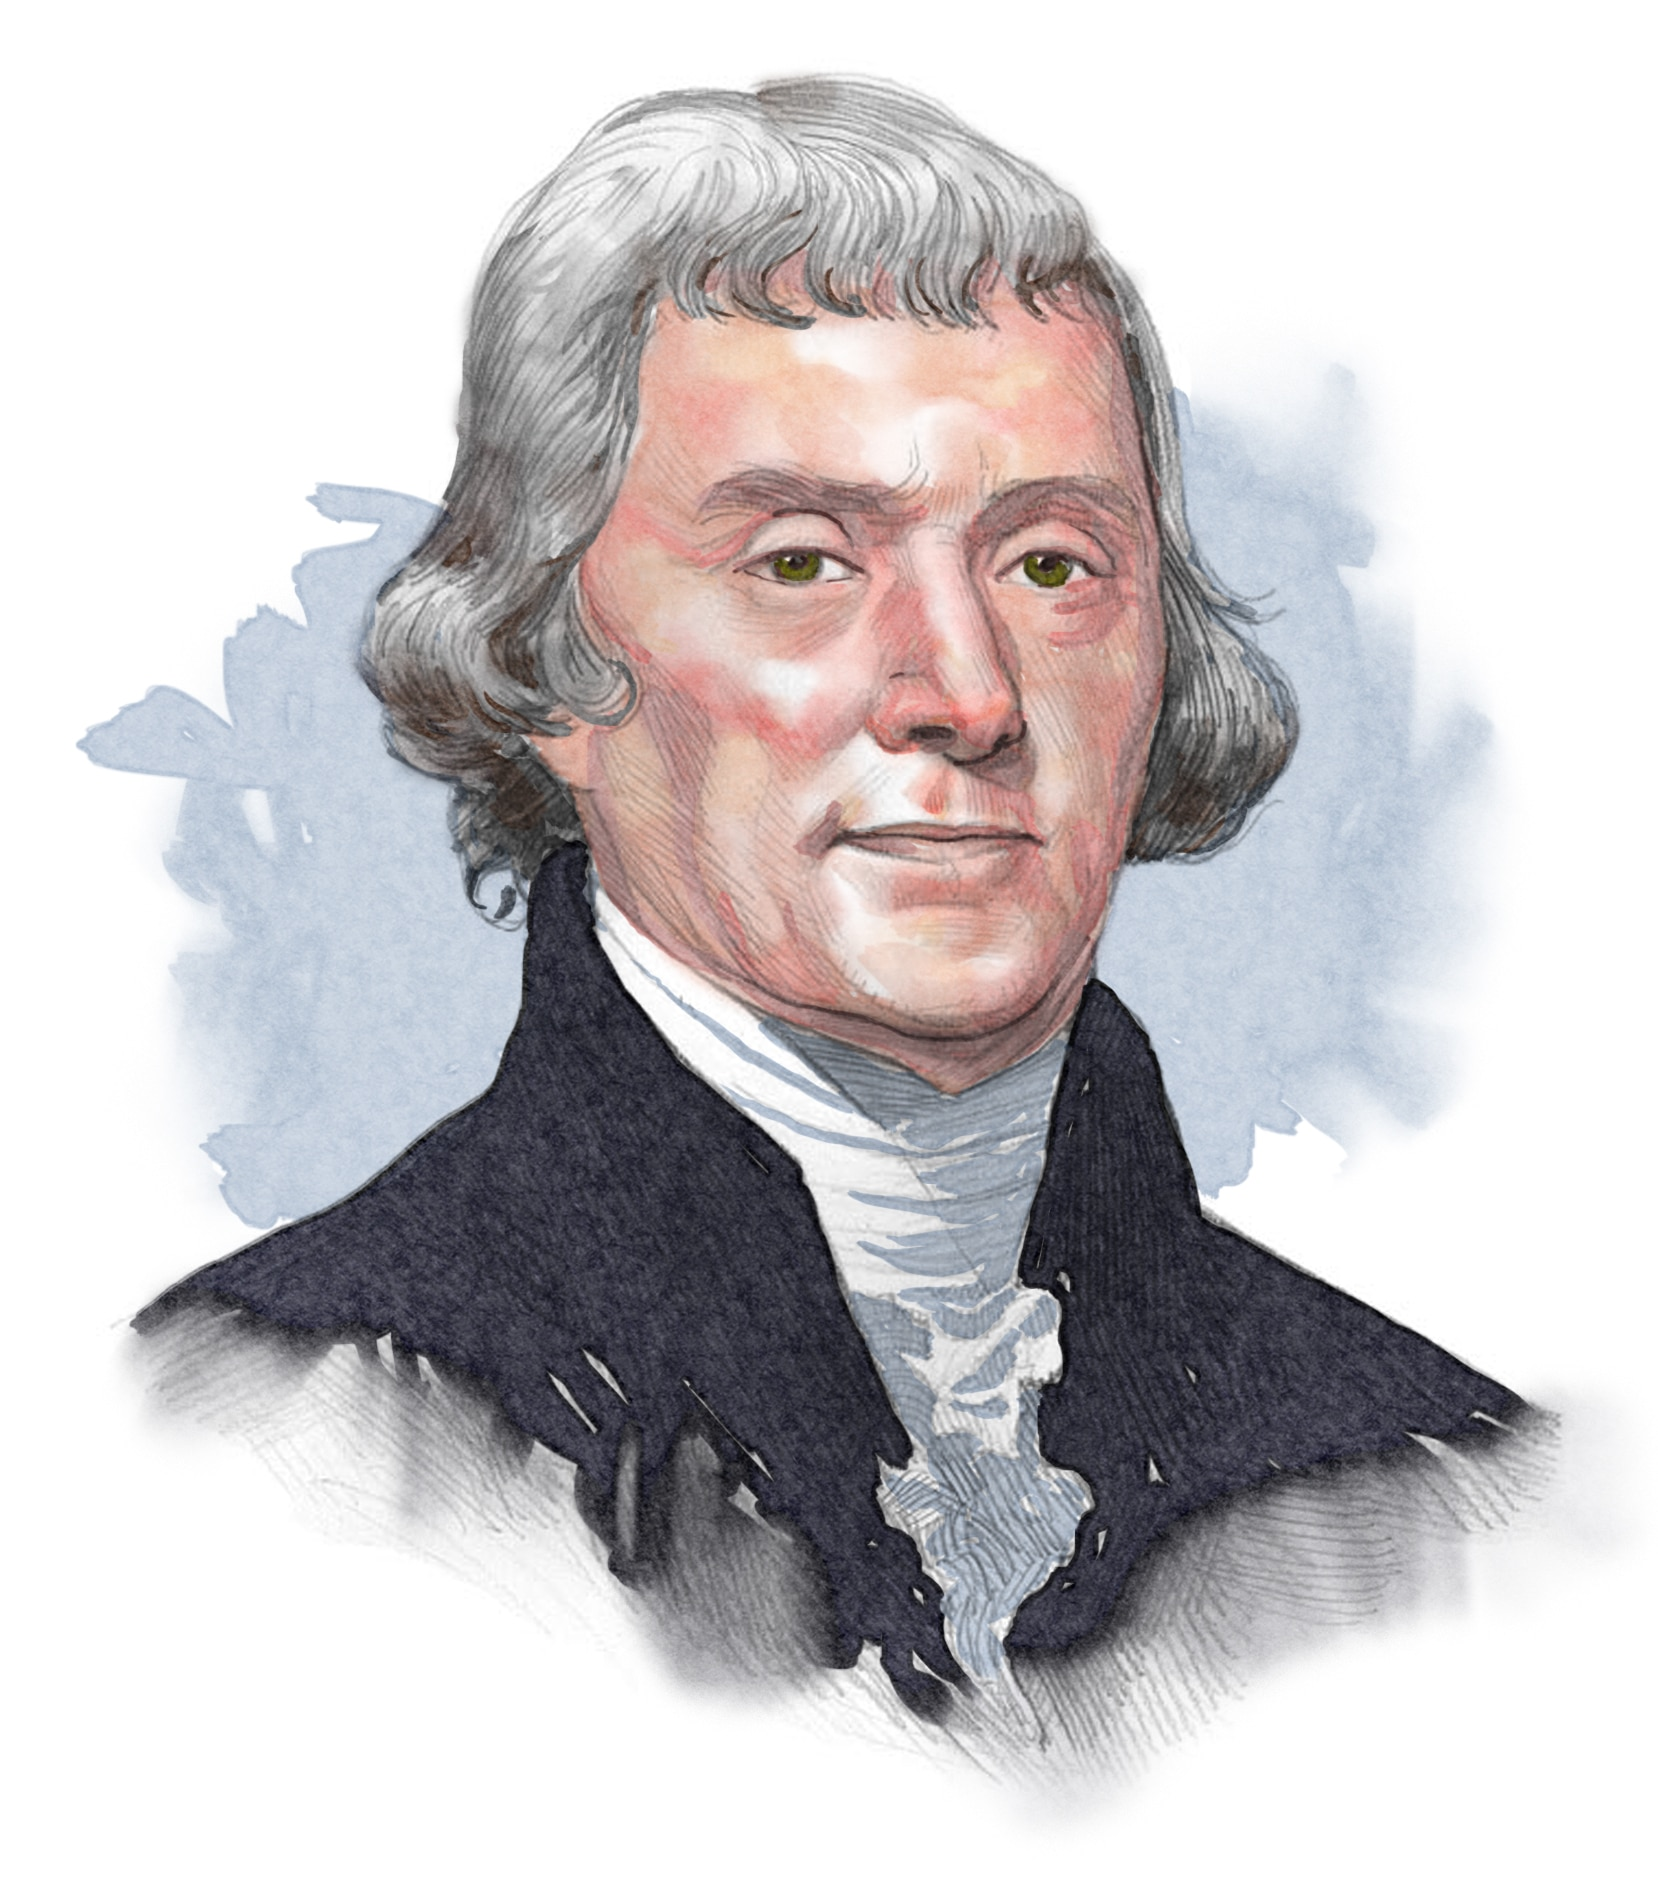 Illustrated image of President Jefferson (© siteseen.info)